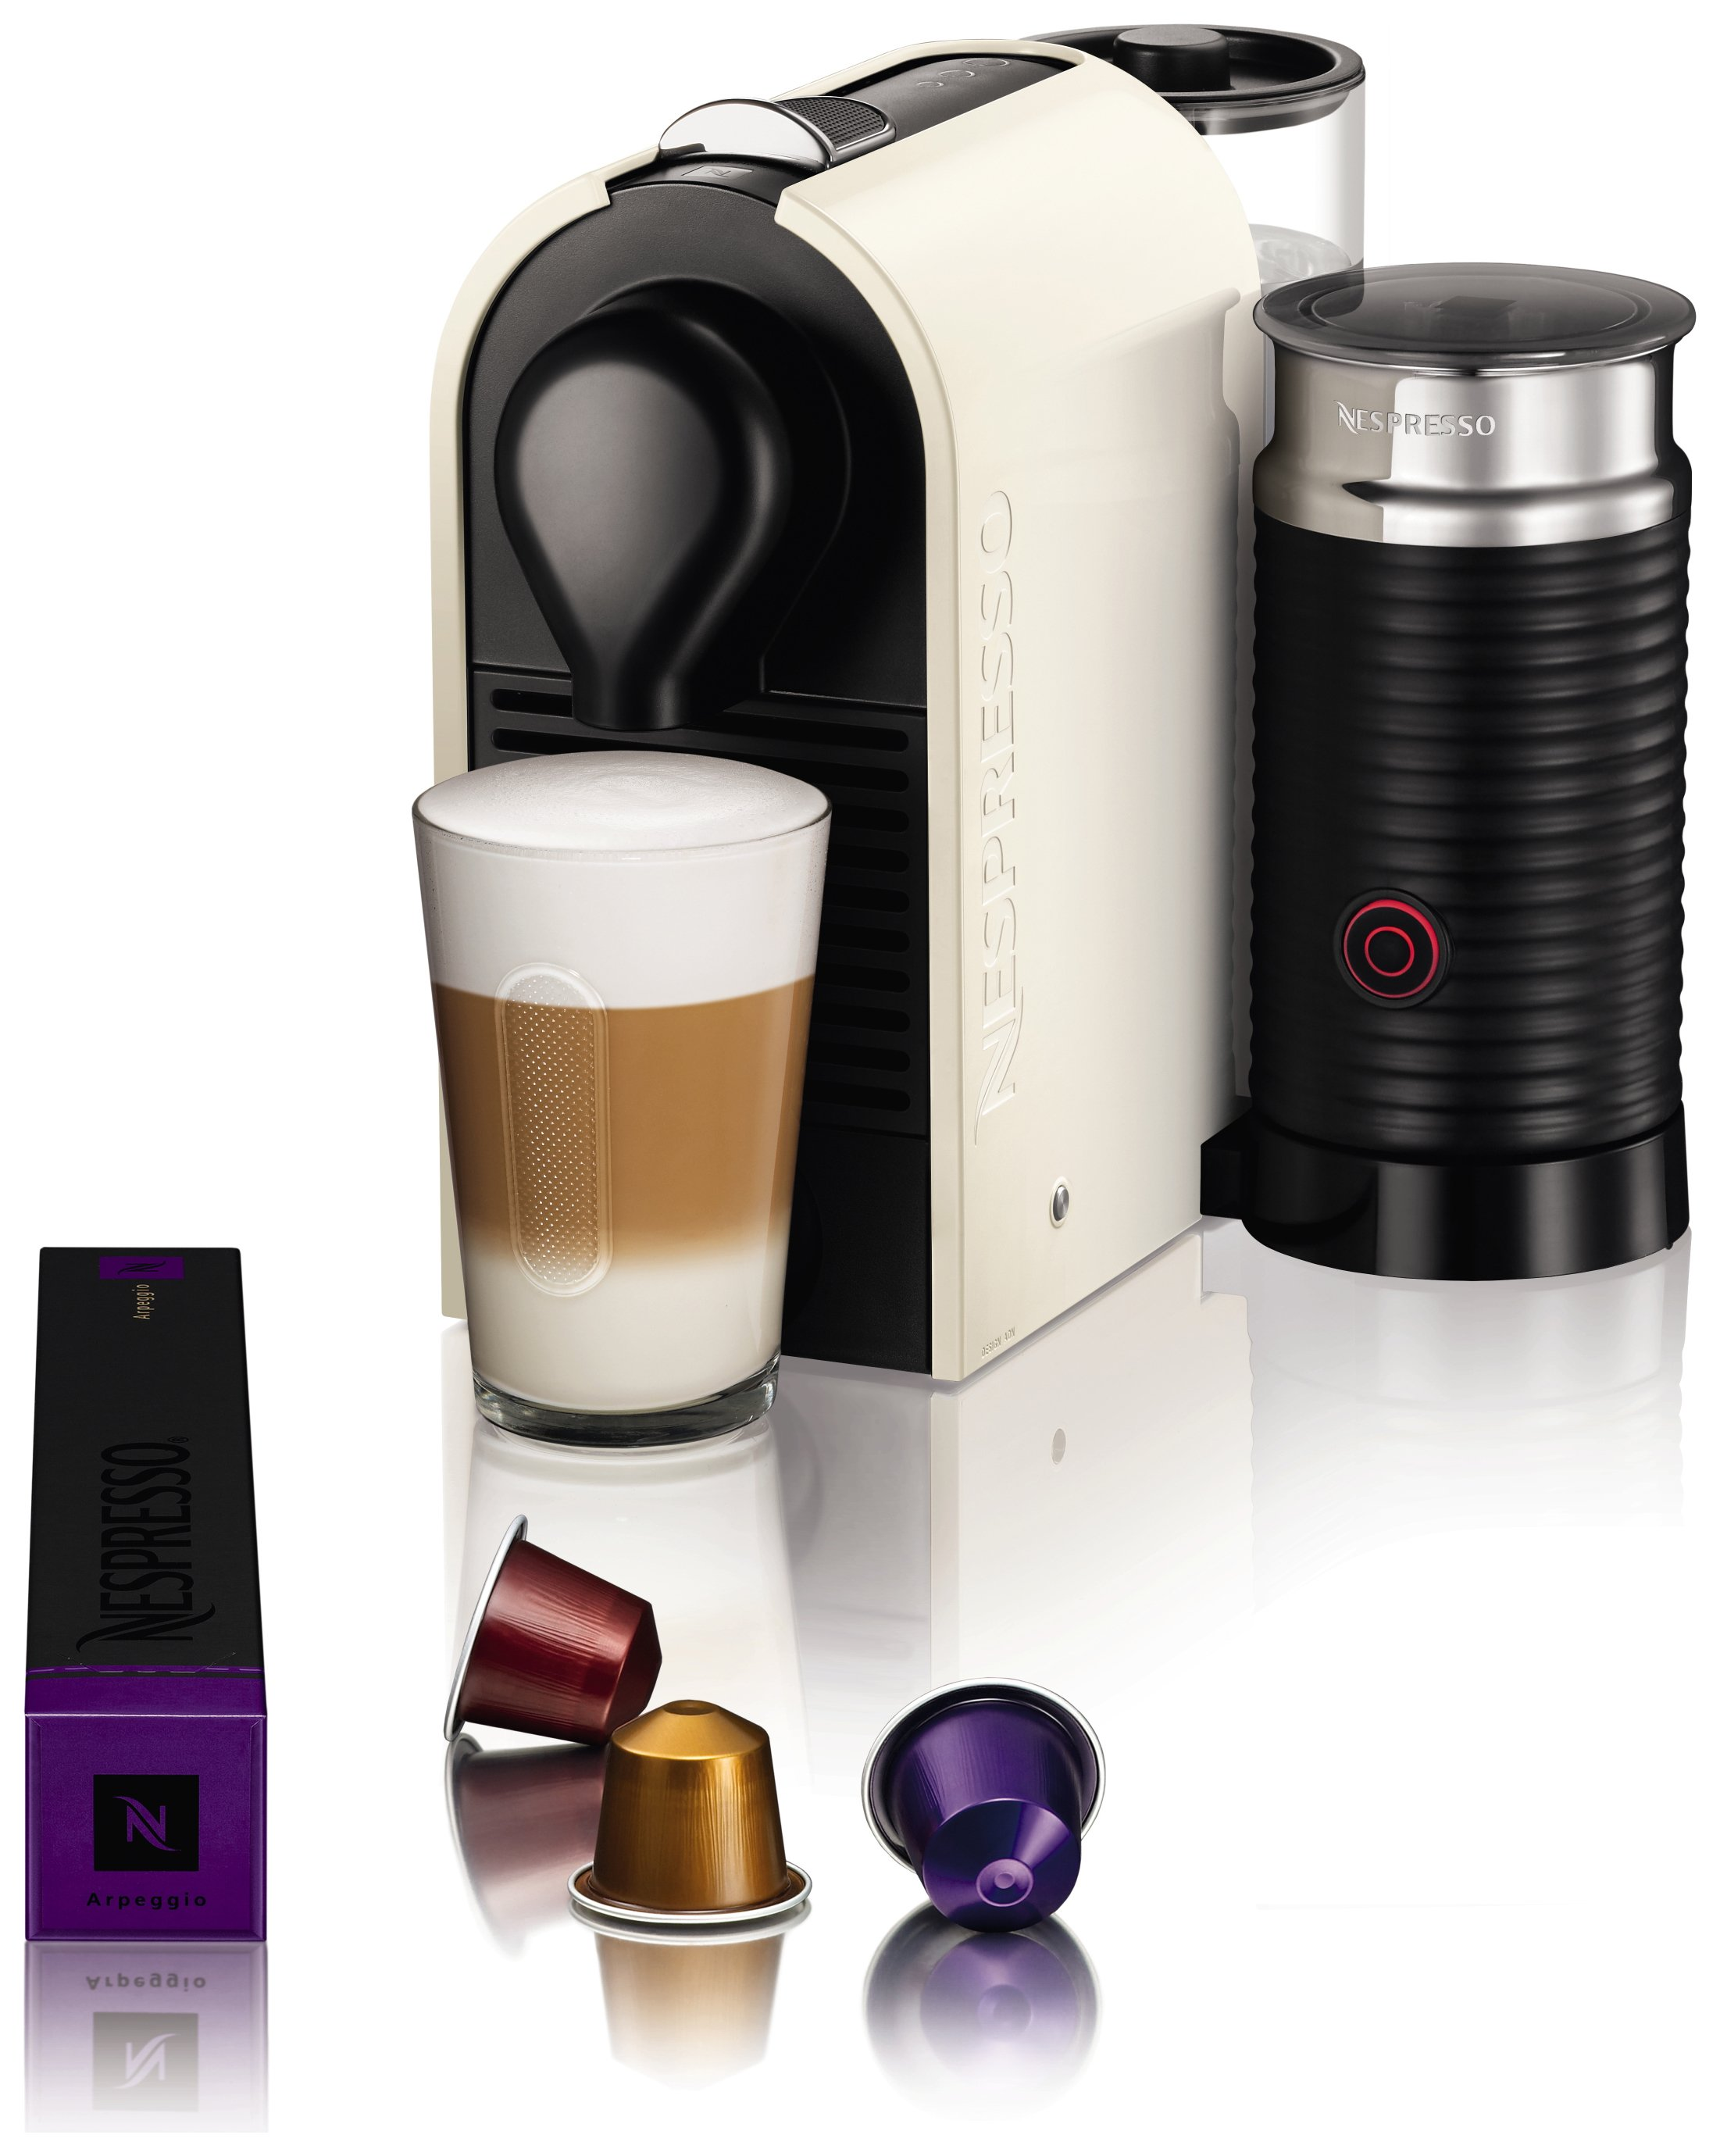 Coffee Maker With Grinder Argos : Coffee Company: Espresso Coffee Makers, Coffee Grinders, Coffee Machines - coffee company Home Page